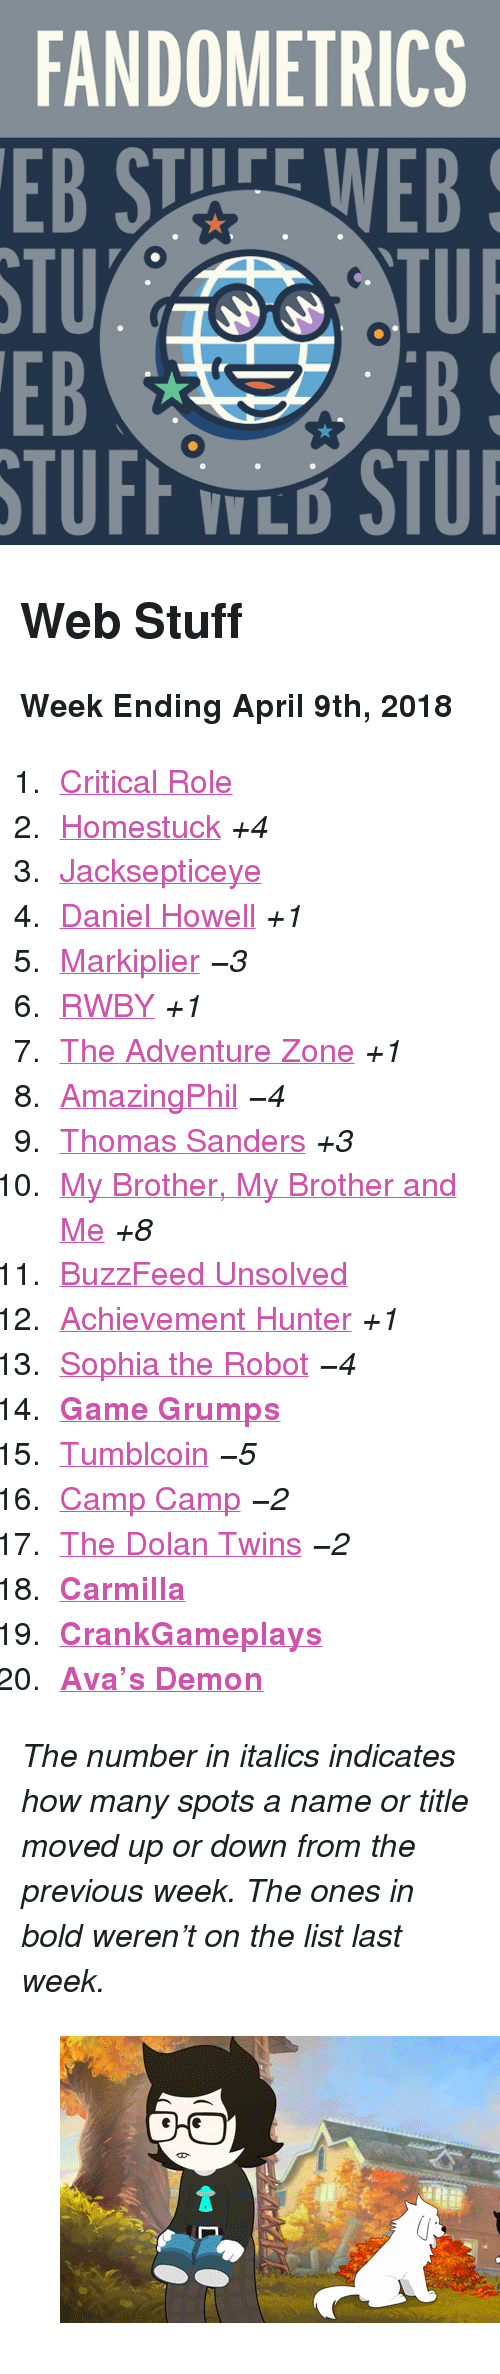 """markiplier: FANDOMETRICS  STU  EB  TUFF TLO STU <h2>Web Stuff</h2><p><b>Week Ending April 9th, 2018</b></p><ol><li><a href=""""http://www.tumblr.com/search/critical%20role"""">Critical Role</a></li>  <li><a href=""""http://www.tumblr.com/search/homestuck"""">Homestuck</a><i>+4</i></li>  <li><a href=""""http://www.tumblr.com/search/jacksepticeye"""">Jacksepticeye</a></li>  <li><a href=""""http://www.tumblr.com/search/daniel%20howell"""">Daniel Howell</a><i>+1</i></li>  <li><a href=""""http://www.tumblr.com/search/markiplier"""">Markiplier</a><i><i>−3</i></i></li>  <li><a href=""""http://www.tumblr.com/search/rwby"""">RWBY</a><i>+1</i></li>  <li><a href=""""http://www.tumblr.com/search/the%20adventure%20zone"""">The Adventure Zone</a><i>+1</i></li>  <li><a href=""""http://www.tumblr.com/search/amazingphil"""">AmazingPhil</a><i><i>−4</i></i></li>  <li><a href=""""http://www.tumblr.com/search/thomas%20sanders"""">Thomas Sanders</a><i>+3</i></li>  <li><a href=""""http://www.tumblr.com/search/mbmbam"""">My Brother, My Brother and Me</a><i>+8</i></li>  <li><a href=""""http://www.tumblr.com/search/buzzfeed%20unsolved"""">BuzzFeed Unsolved</a></li>  <li><a href=""""http://www.tumblr.com/search/achievement%20hunter"""">Achievement Hunter</a><i>+1</i></li>  <li><a href=""""http://www.tumblr.com/search/sophia%20the%20robot"""">Sophia the Robot</a><i><i>−4</i></i></li>  <li><a href=""""http://www.tumblr.com/search/game%20grumps""""><b>Game Grumps</b></a></li>  <li><a href=""""http://www.tumblr.com/search/tumblcoin"""">Tumblcoin</a><i><i>−5</i></i></li>  <li><a href=""""http://www.tumblr.com/search/camp%20camp"""">Camp Camp</a><i><i>−2</i></i></li>  <li><a href=""""http://www.tumblr.com/search/dolan%20twins"""">The Dolan Twins</a><i><i>−2</i></i></li>  <li><a href=""""http://www.tumblr.com/search/carmilla""""><b>Carmilla</b></a></li>  <li><a href=""""http://www.tumblr.com/search/crankgameplays""""><b>CrankGameplays</b></a></li>  <li><a href=""""http://www.tumblr.com/search/avas%20demon""""><b>Ava&rsquo;s Demon</b></a></li></ol><p><i>The number in italics indicates how many spots a name or title mo"""